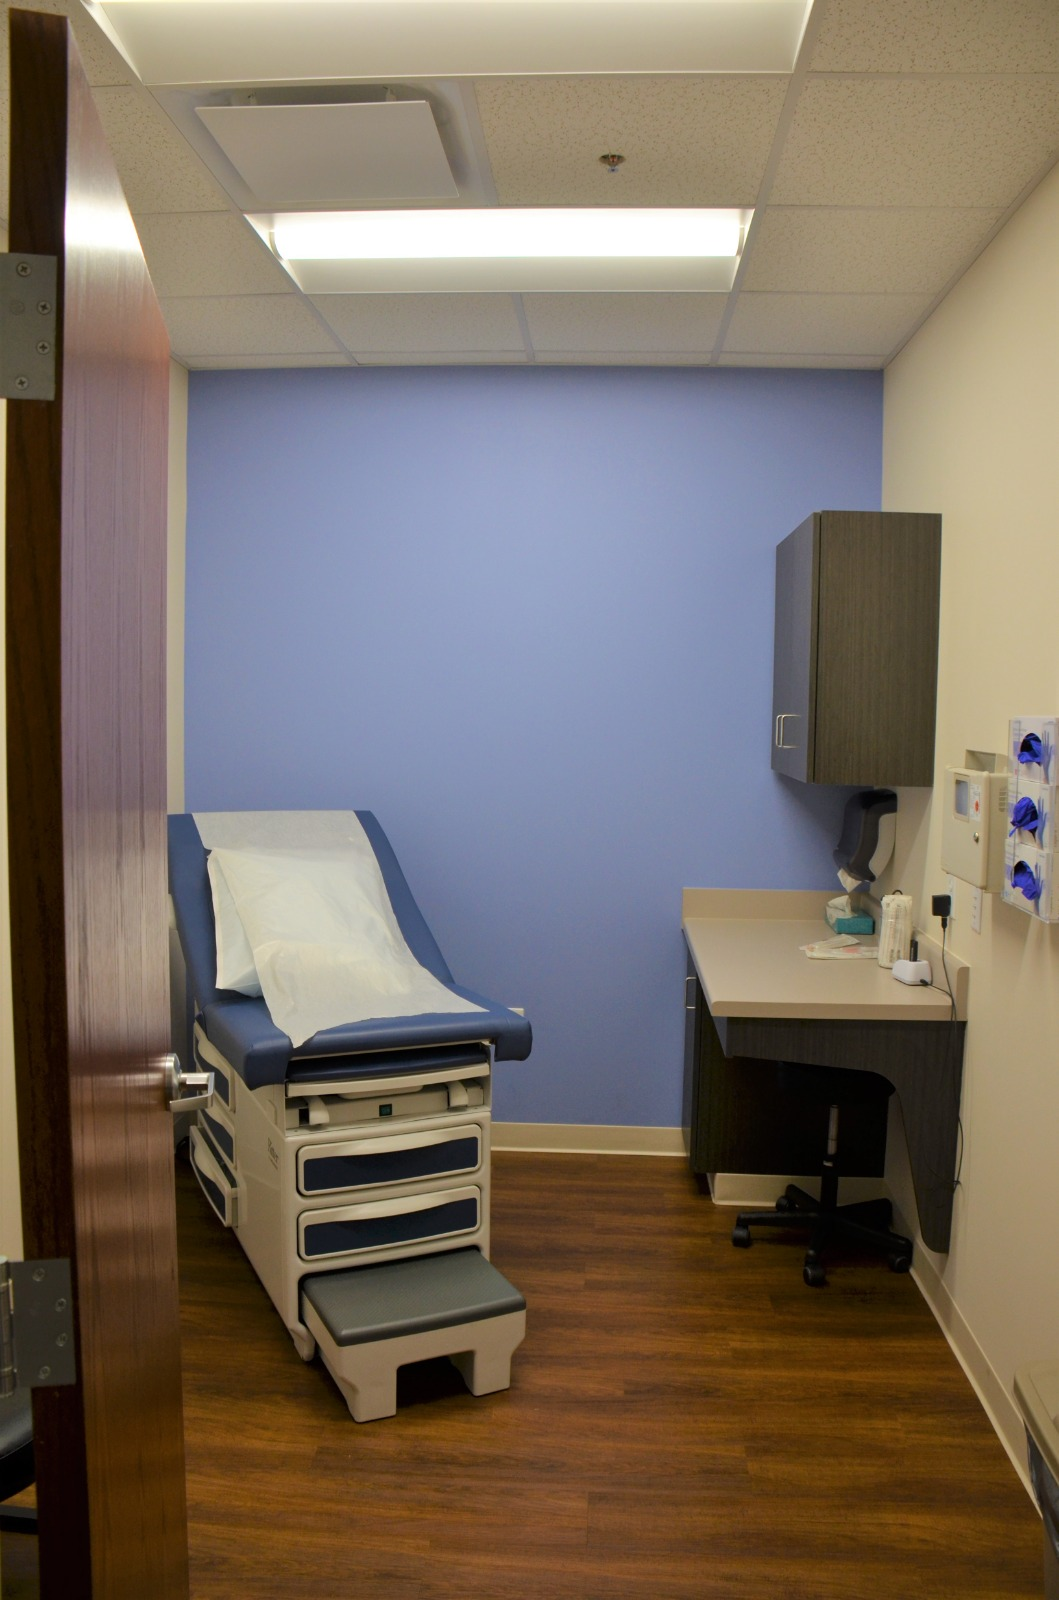 MEDIQ Urgent Care Exam Room in Winston-Salem